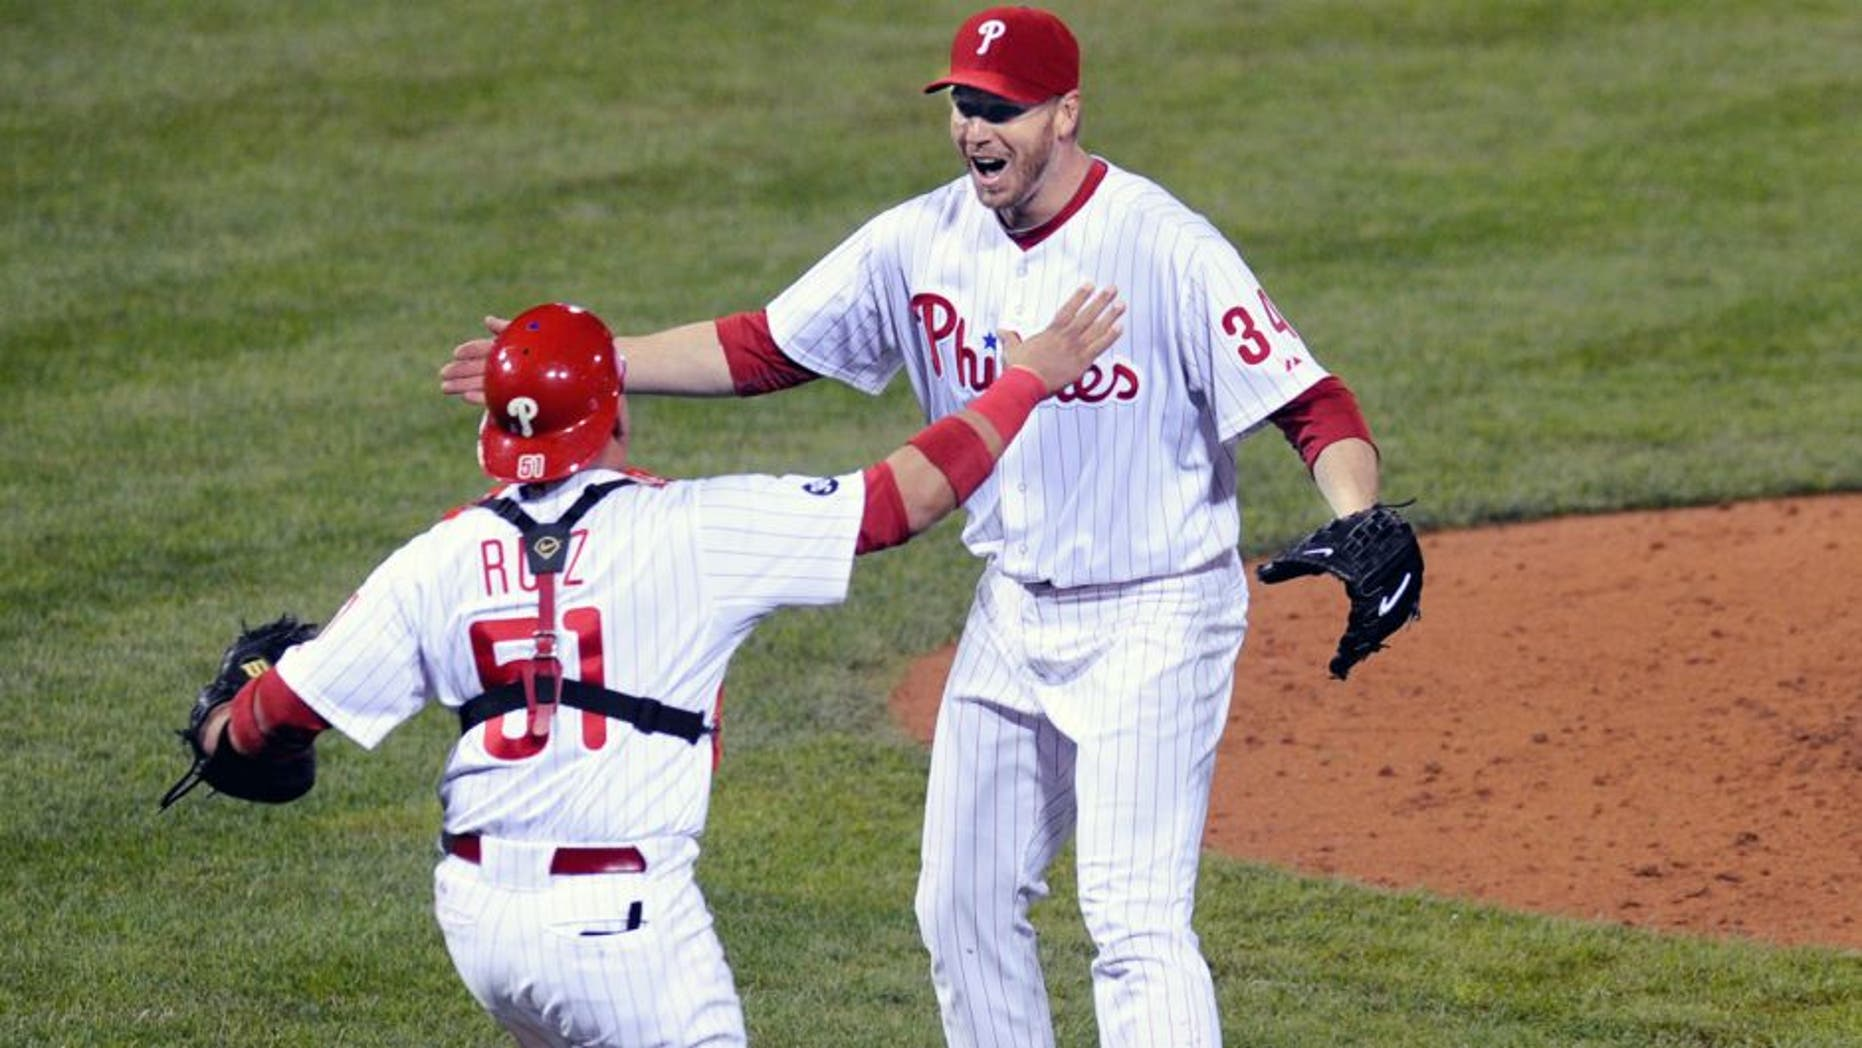 PHILADELPHIA - OCTOBER 06: Roy Halladay #34 of the Philadelphia Phillies celebrates with Carlos Ruiz #51 after throwing a no hitter against the Cincinnati Reds on October 6, 2010 during Game 1 of the NLDS at Citizens Bank Park in Philadelphia, Pennsylvania. The Phillies defeated the Reds 4-0. (Photo by: Rob Tringali/SportsChrome/Getty Images) *** Local Caption *** Roy Halladay;Carlos Ruiz